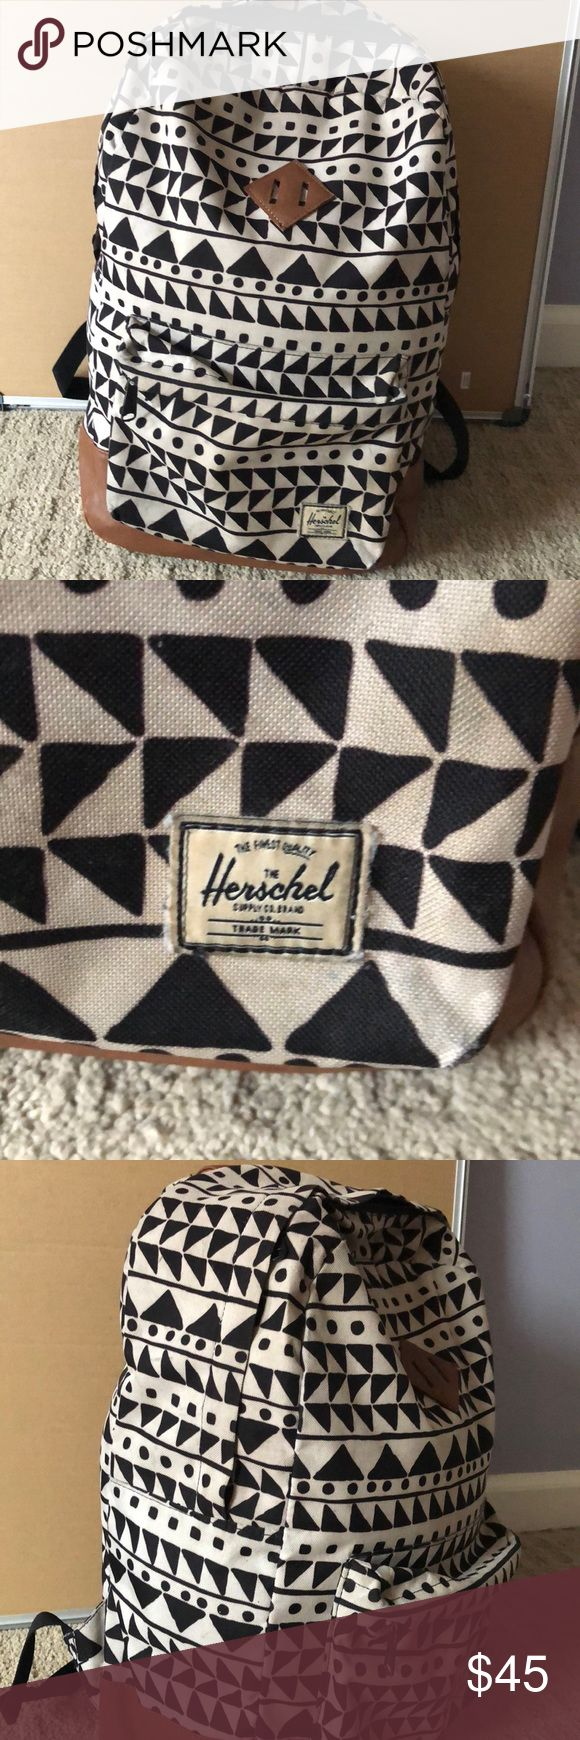 Slightly used Herschel backpack. Tribal print. Slight used you can see a little wear on the leather price reflects that. Laptop pocket and secret compartment inside. No rips or tears. Good quality. Bags Backpacks